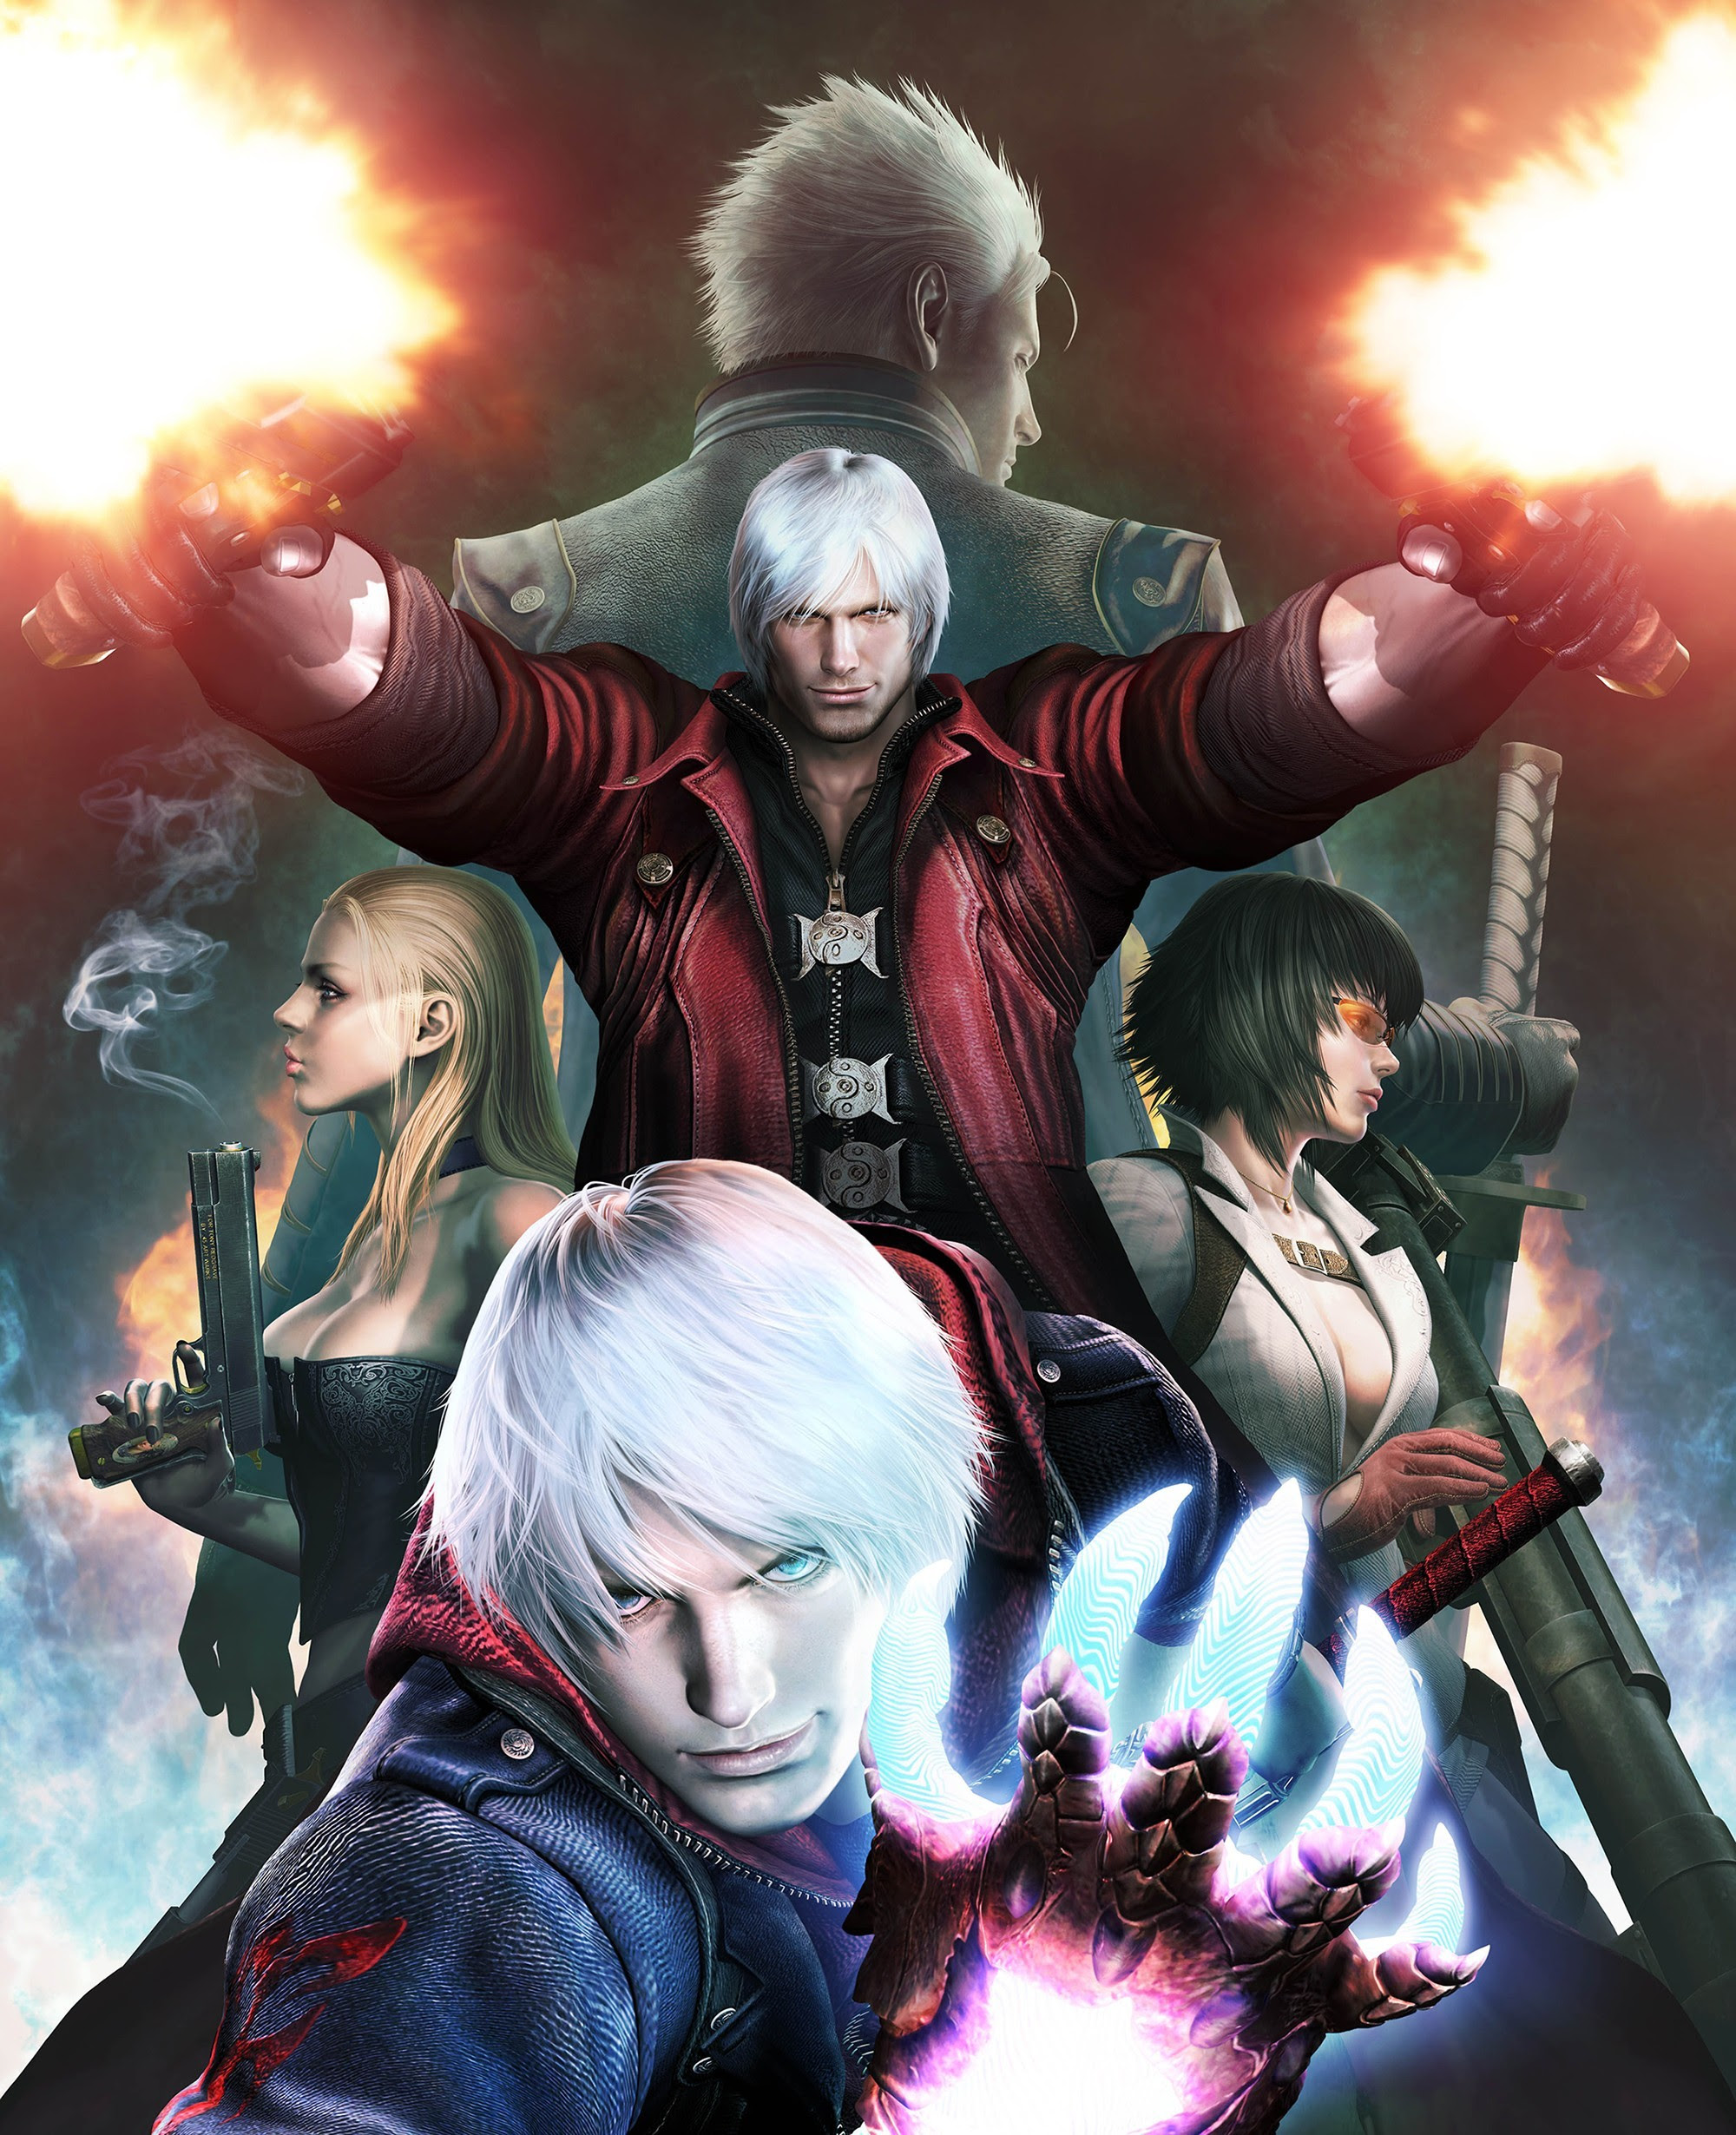 Devil May Cry 4 Wallpaper 69 Images